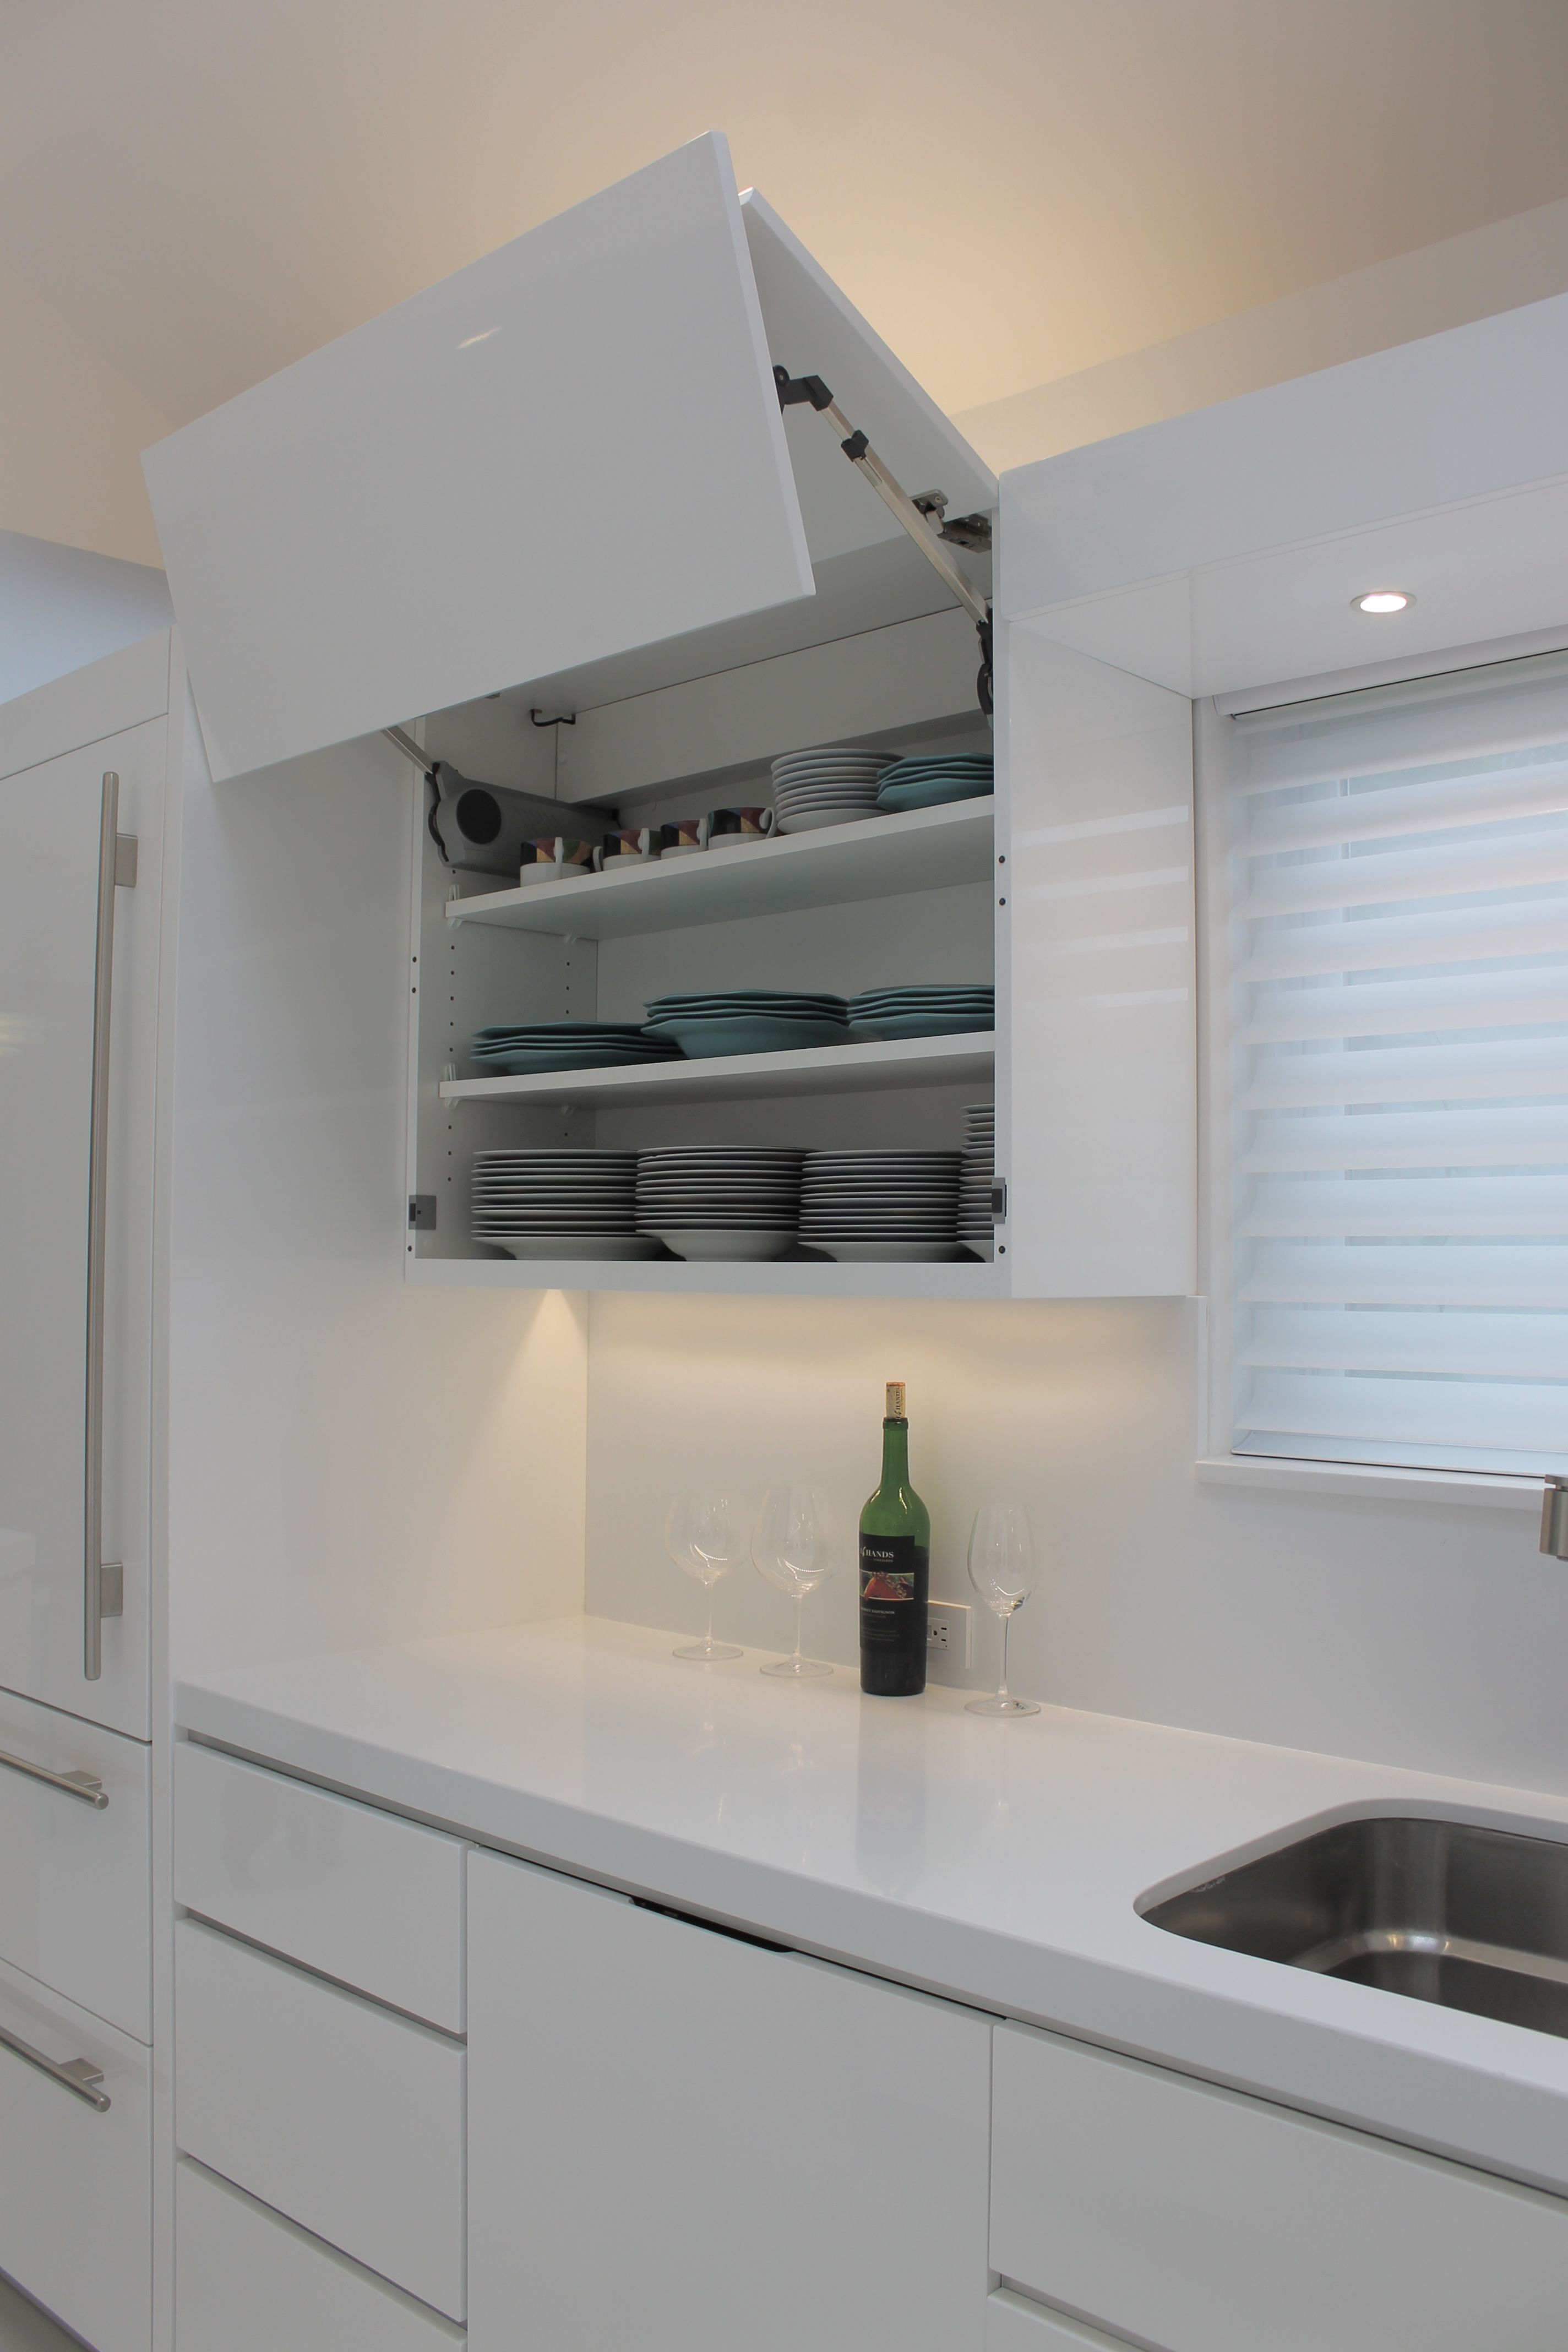 Custom Electric Lift Up Cabinets Just A Touch Of The Cabinet Door Opens Closes Automatically Kitchen Cabinets Uk Buy Kitchen Cabinets White Modern Kitchen